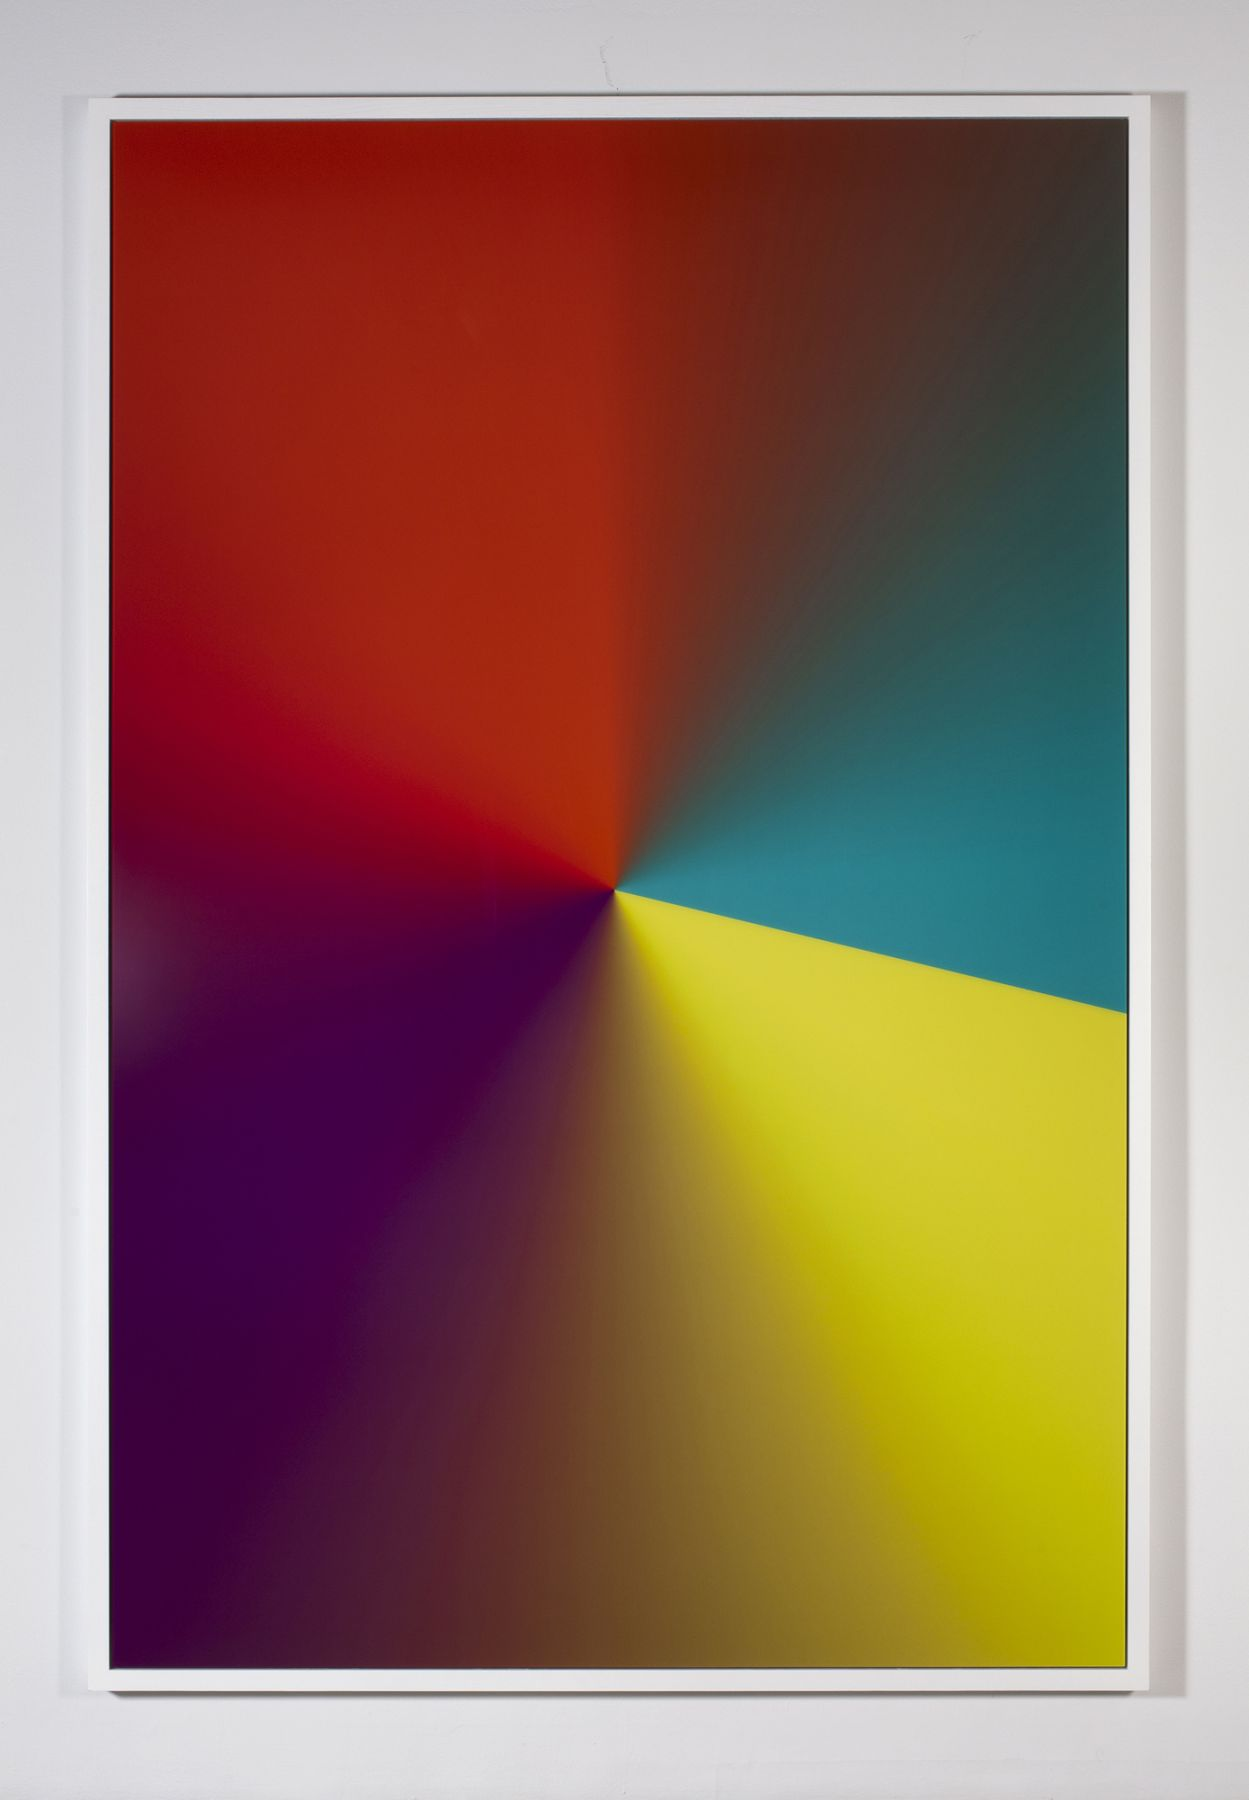 """Cory Arcangel Photoshop CS: 110 by 72 inches, 300 DPI, RGB, square pixels, default gradient """"Yellow, Violet, Red, Teal"""", mousedown y=16450 x=10750, mouseup y=18850 x=20600, 2009"""